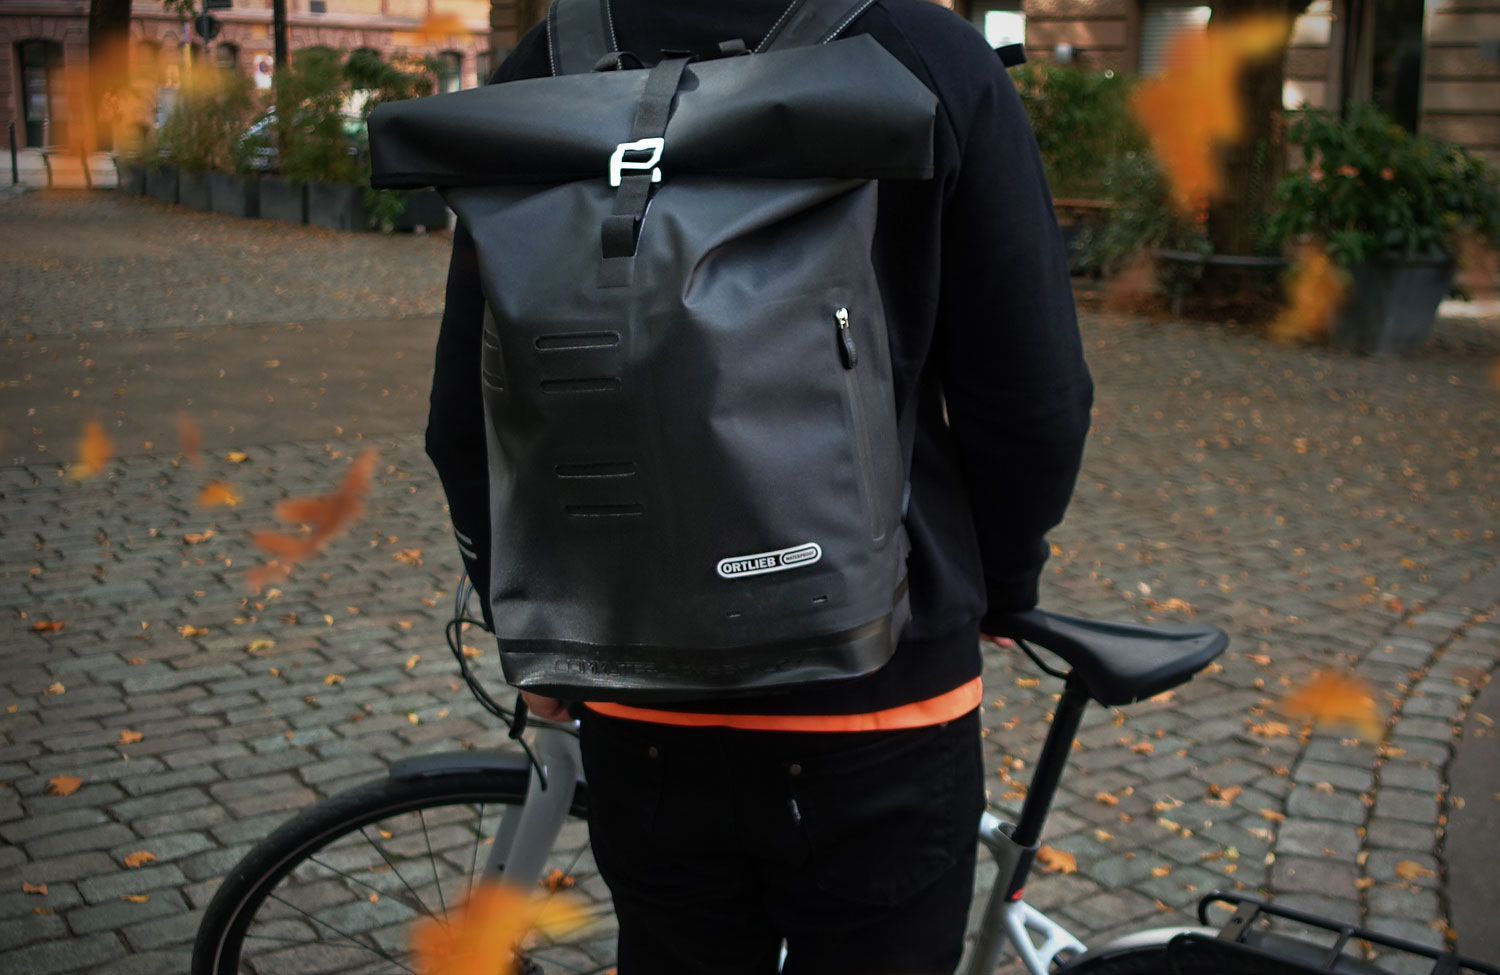 In the check: The bicycle backpack Commuter-Daypack City by Ortlieb